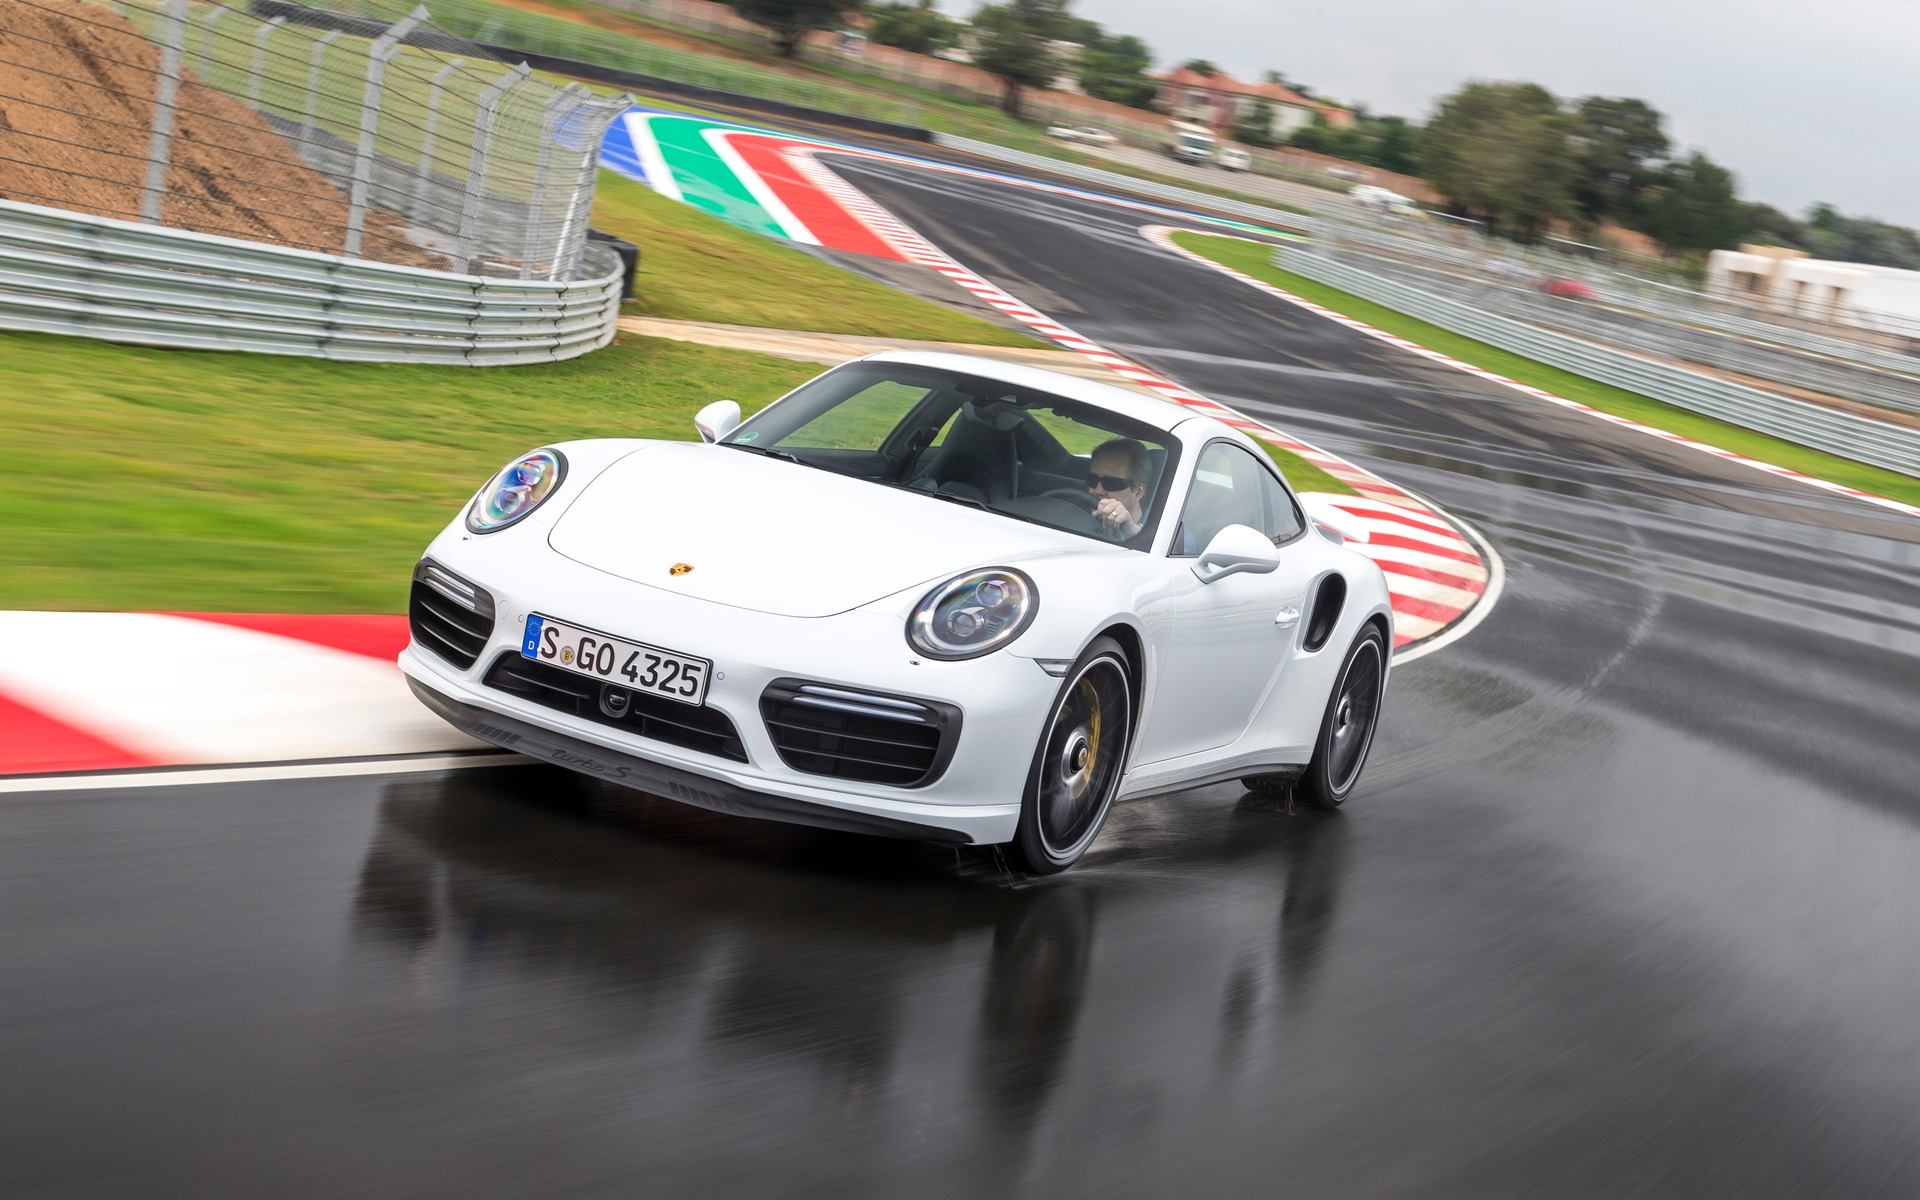 2017 Porsche 911 Turbo at Kyalami Racing Circuit in South Africa